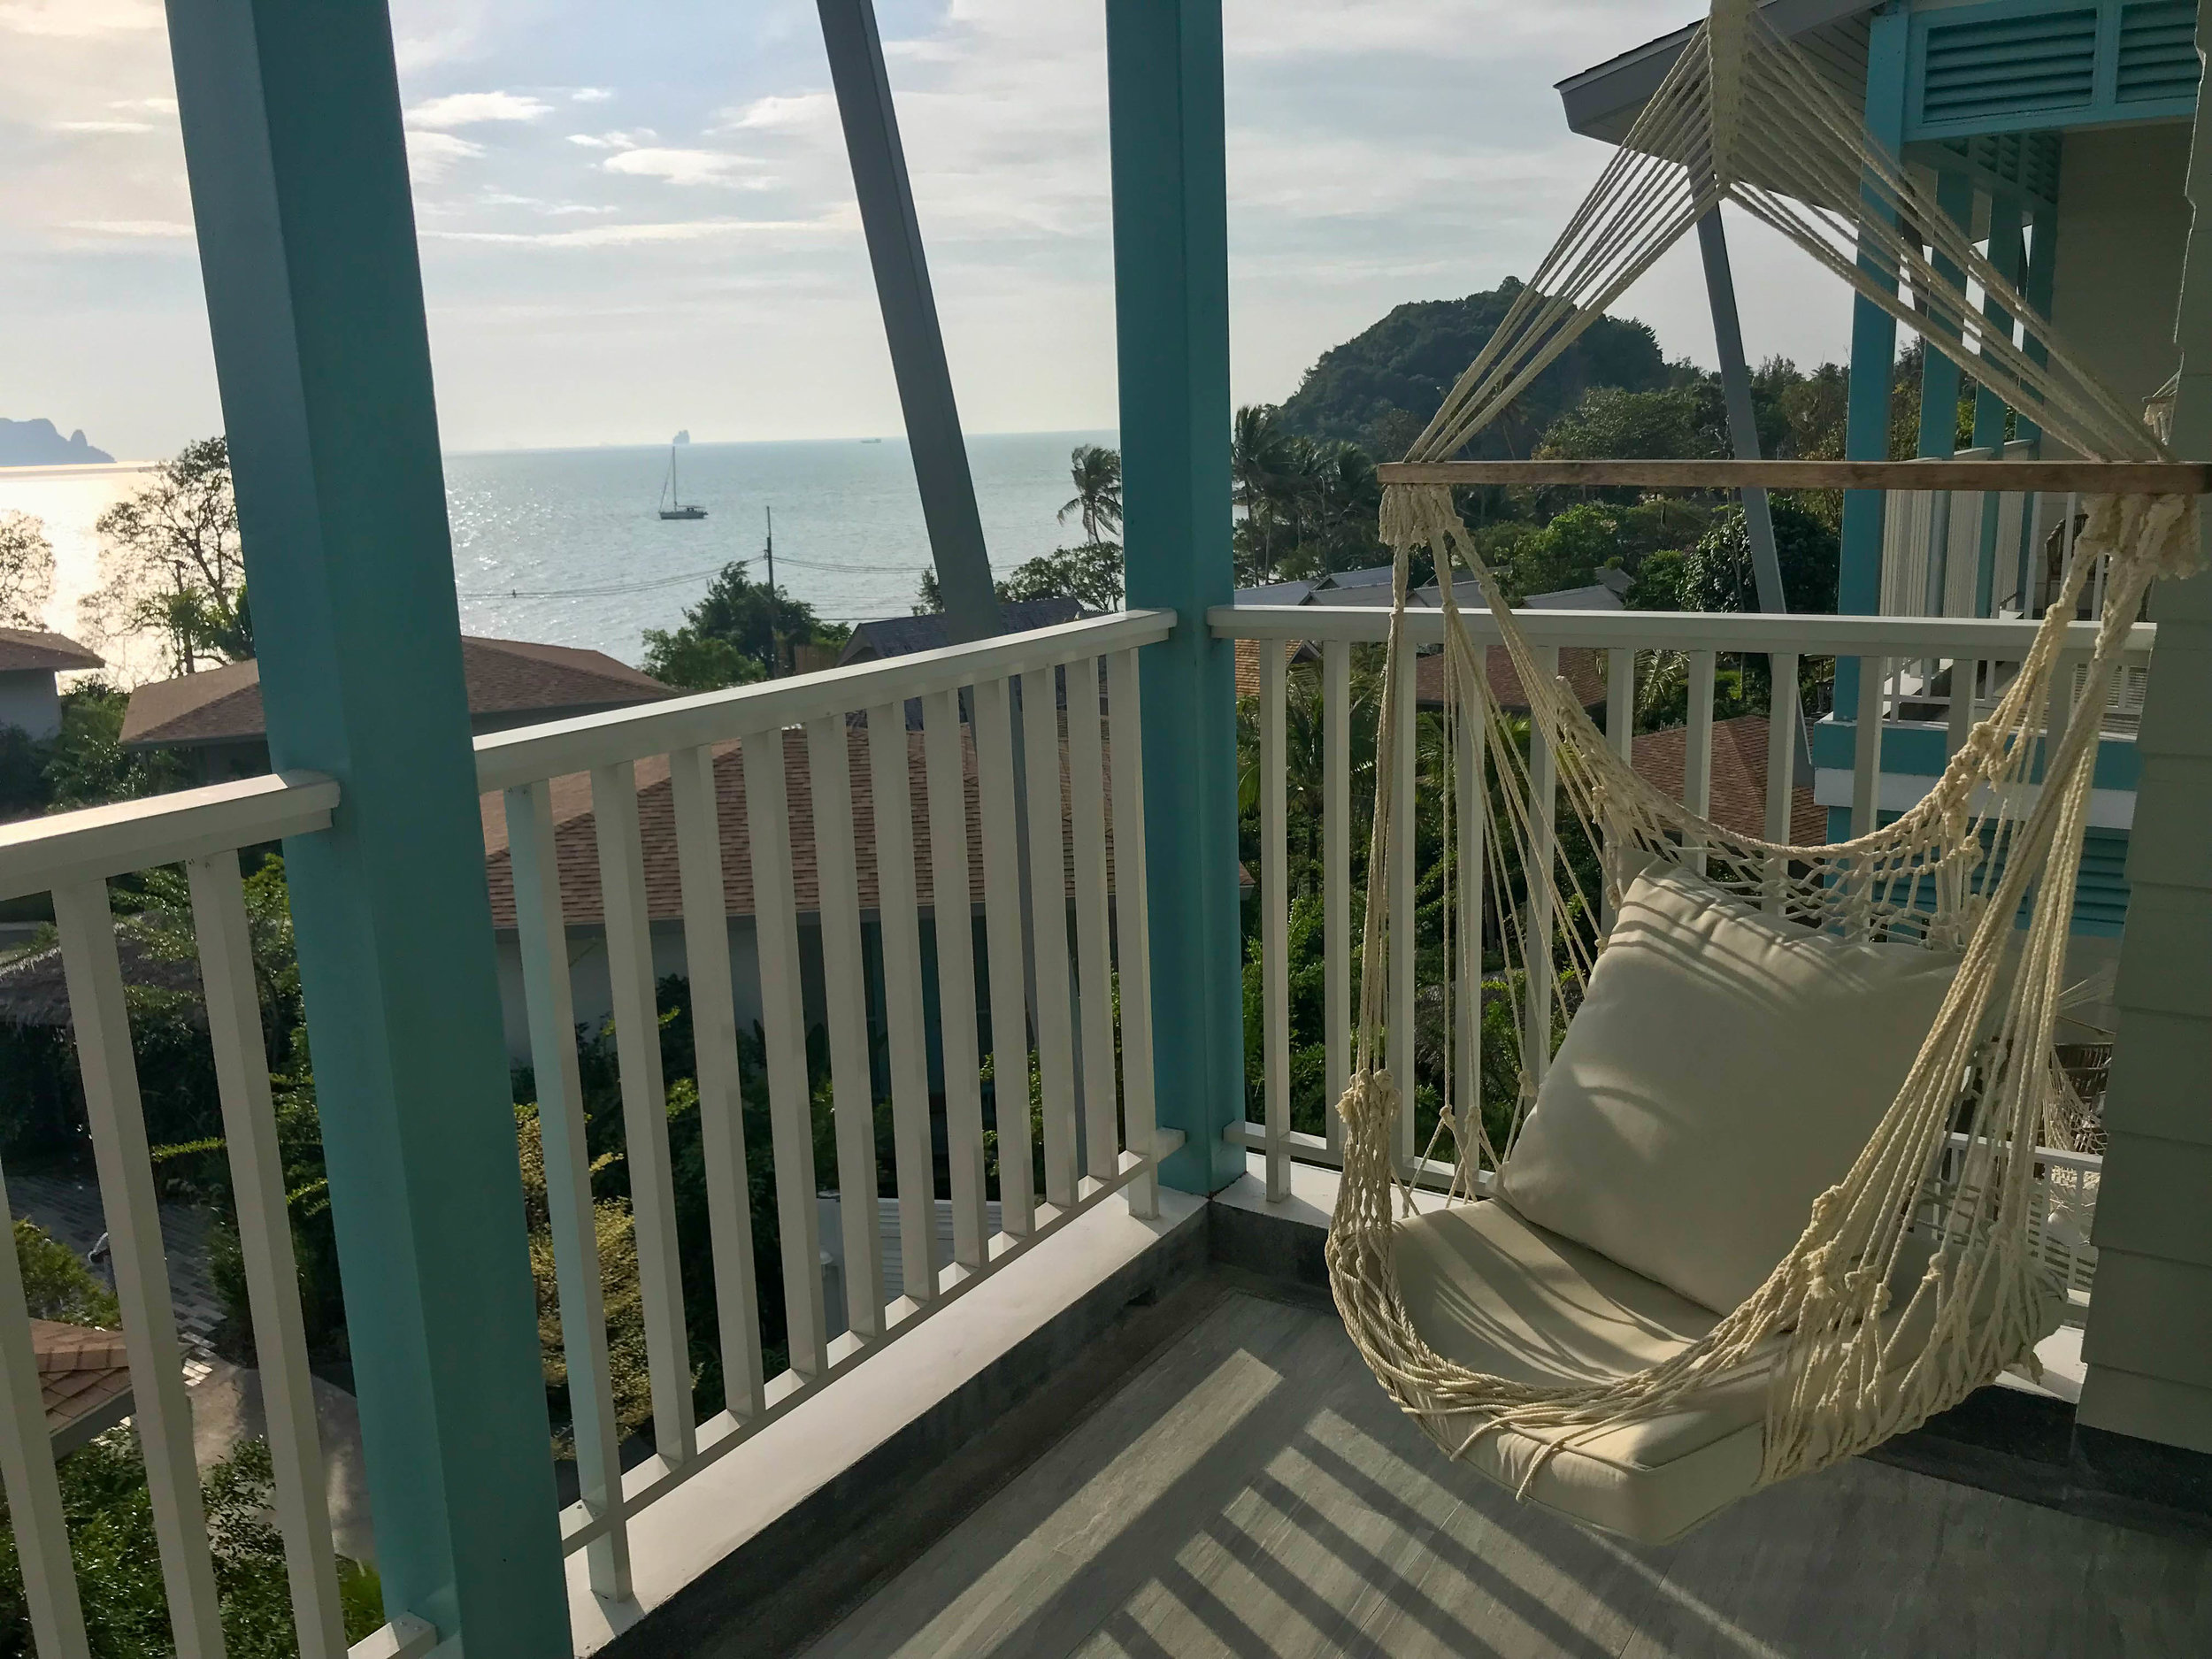 Thailand Cape Kudu Hotel Koh Yao Noi - porch swing and view